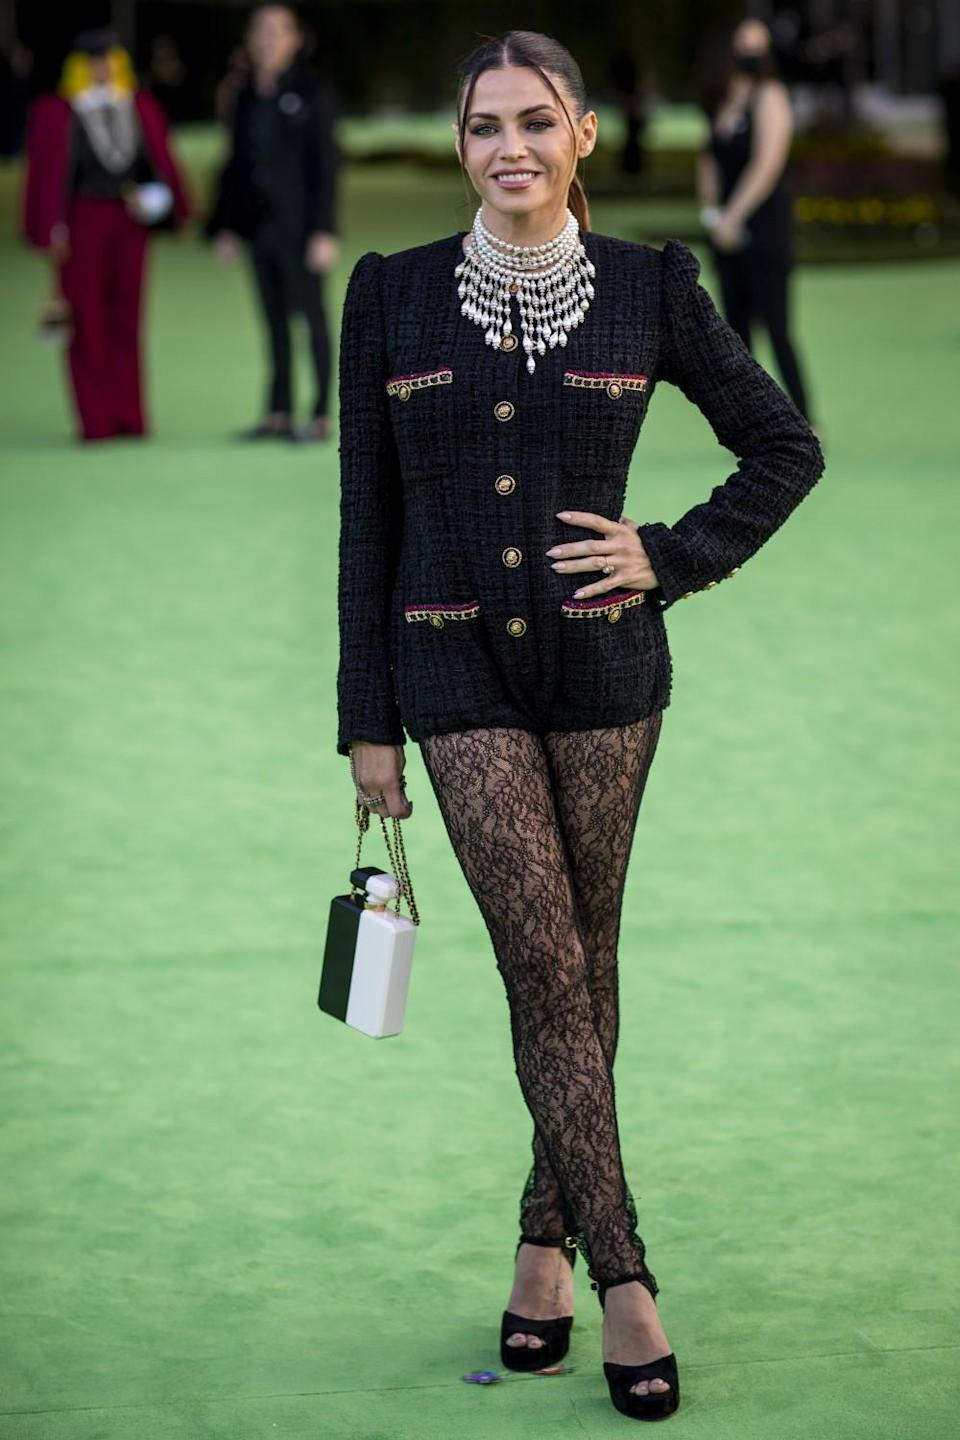 A woman in a black, button-down jacket and lace pants posing on a green carpet